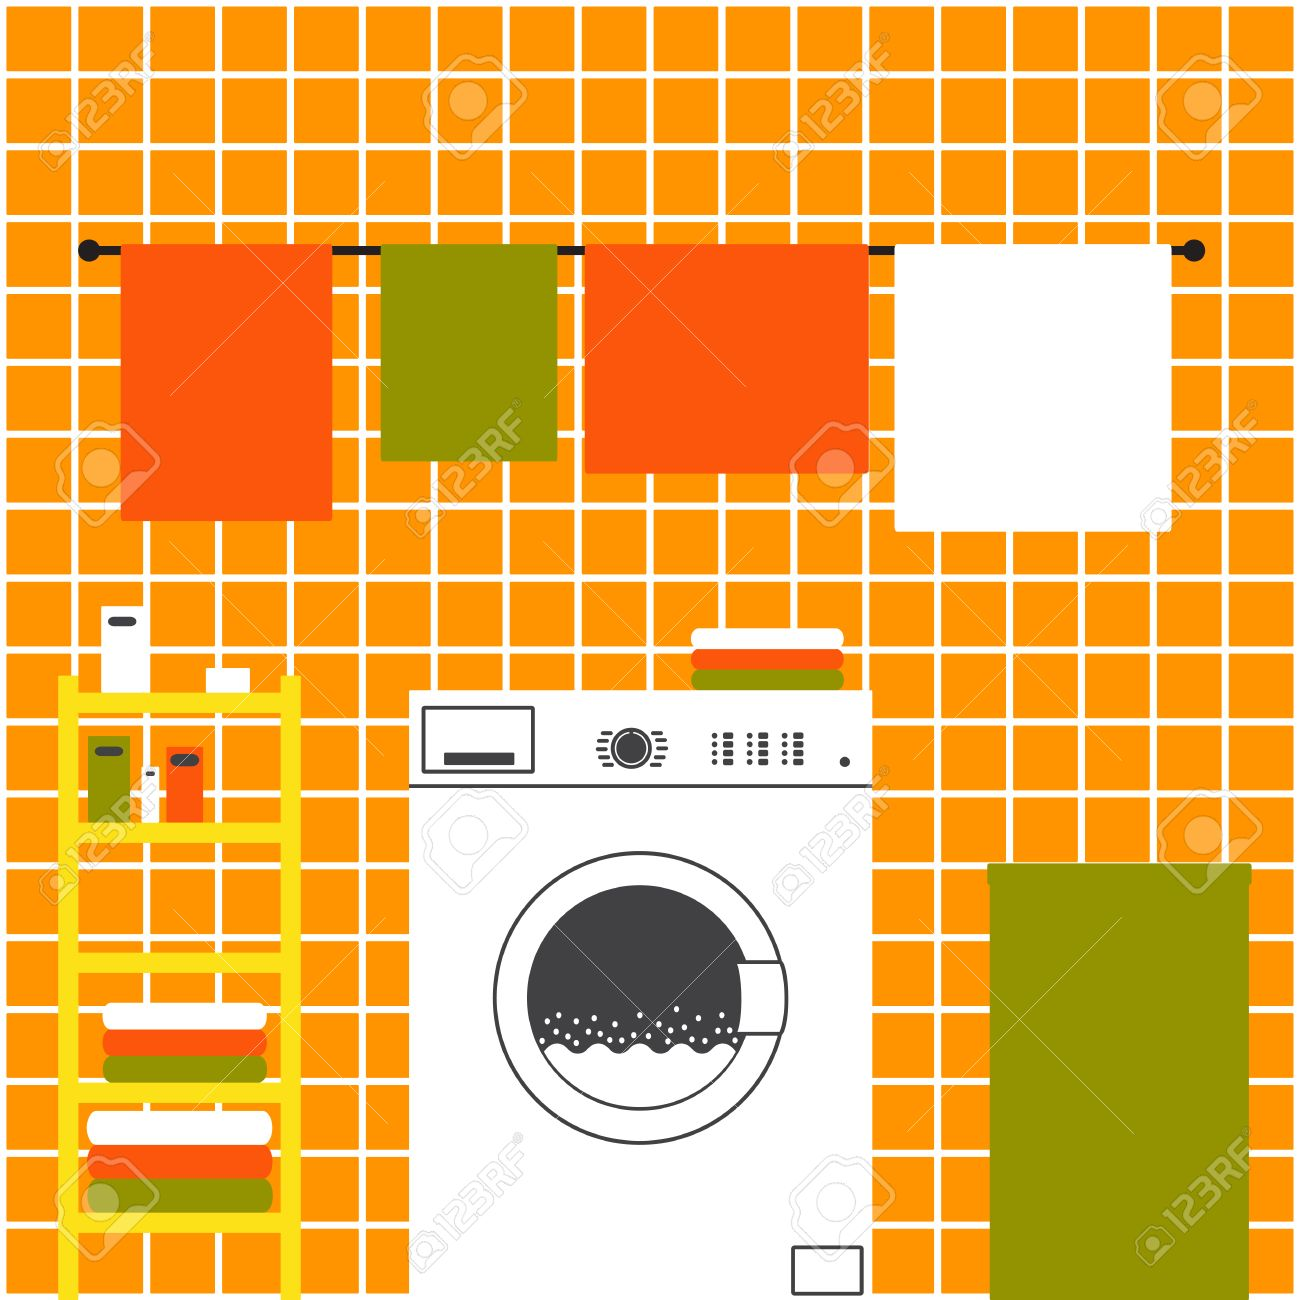 Orange laundry room interior with ceramic tile wall front loading orange laundry room interior with ceramic tile wall front loading type washing machine laundry dailygadgetfo Gallery